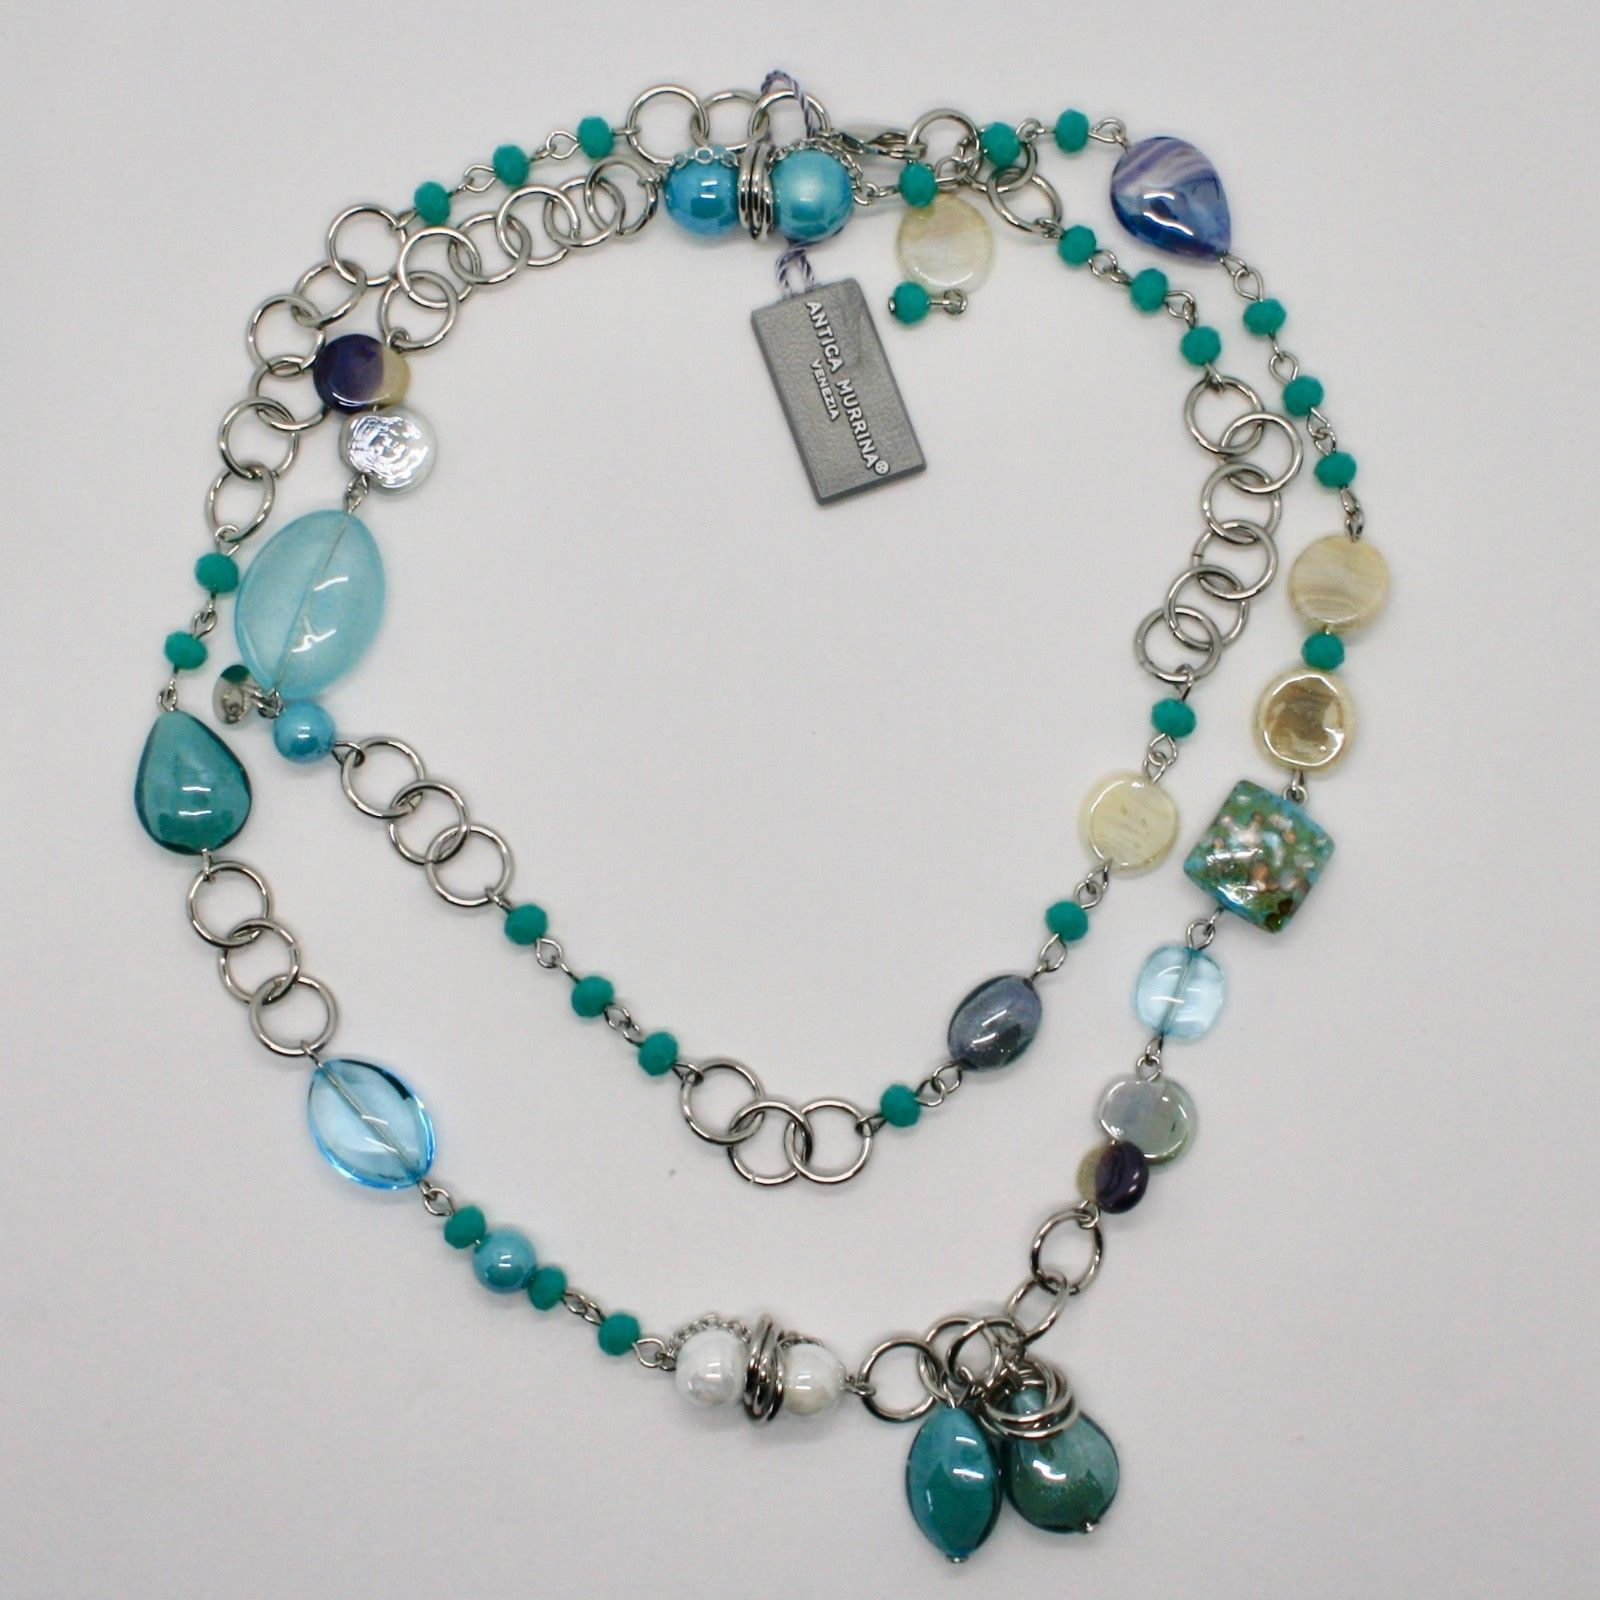 ANTICA MURRINA VENEZIA NECKLACE WITH MURANO GLASS BEIGE TURQUOISE BLU COA79A07